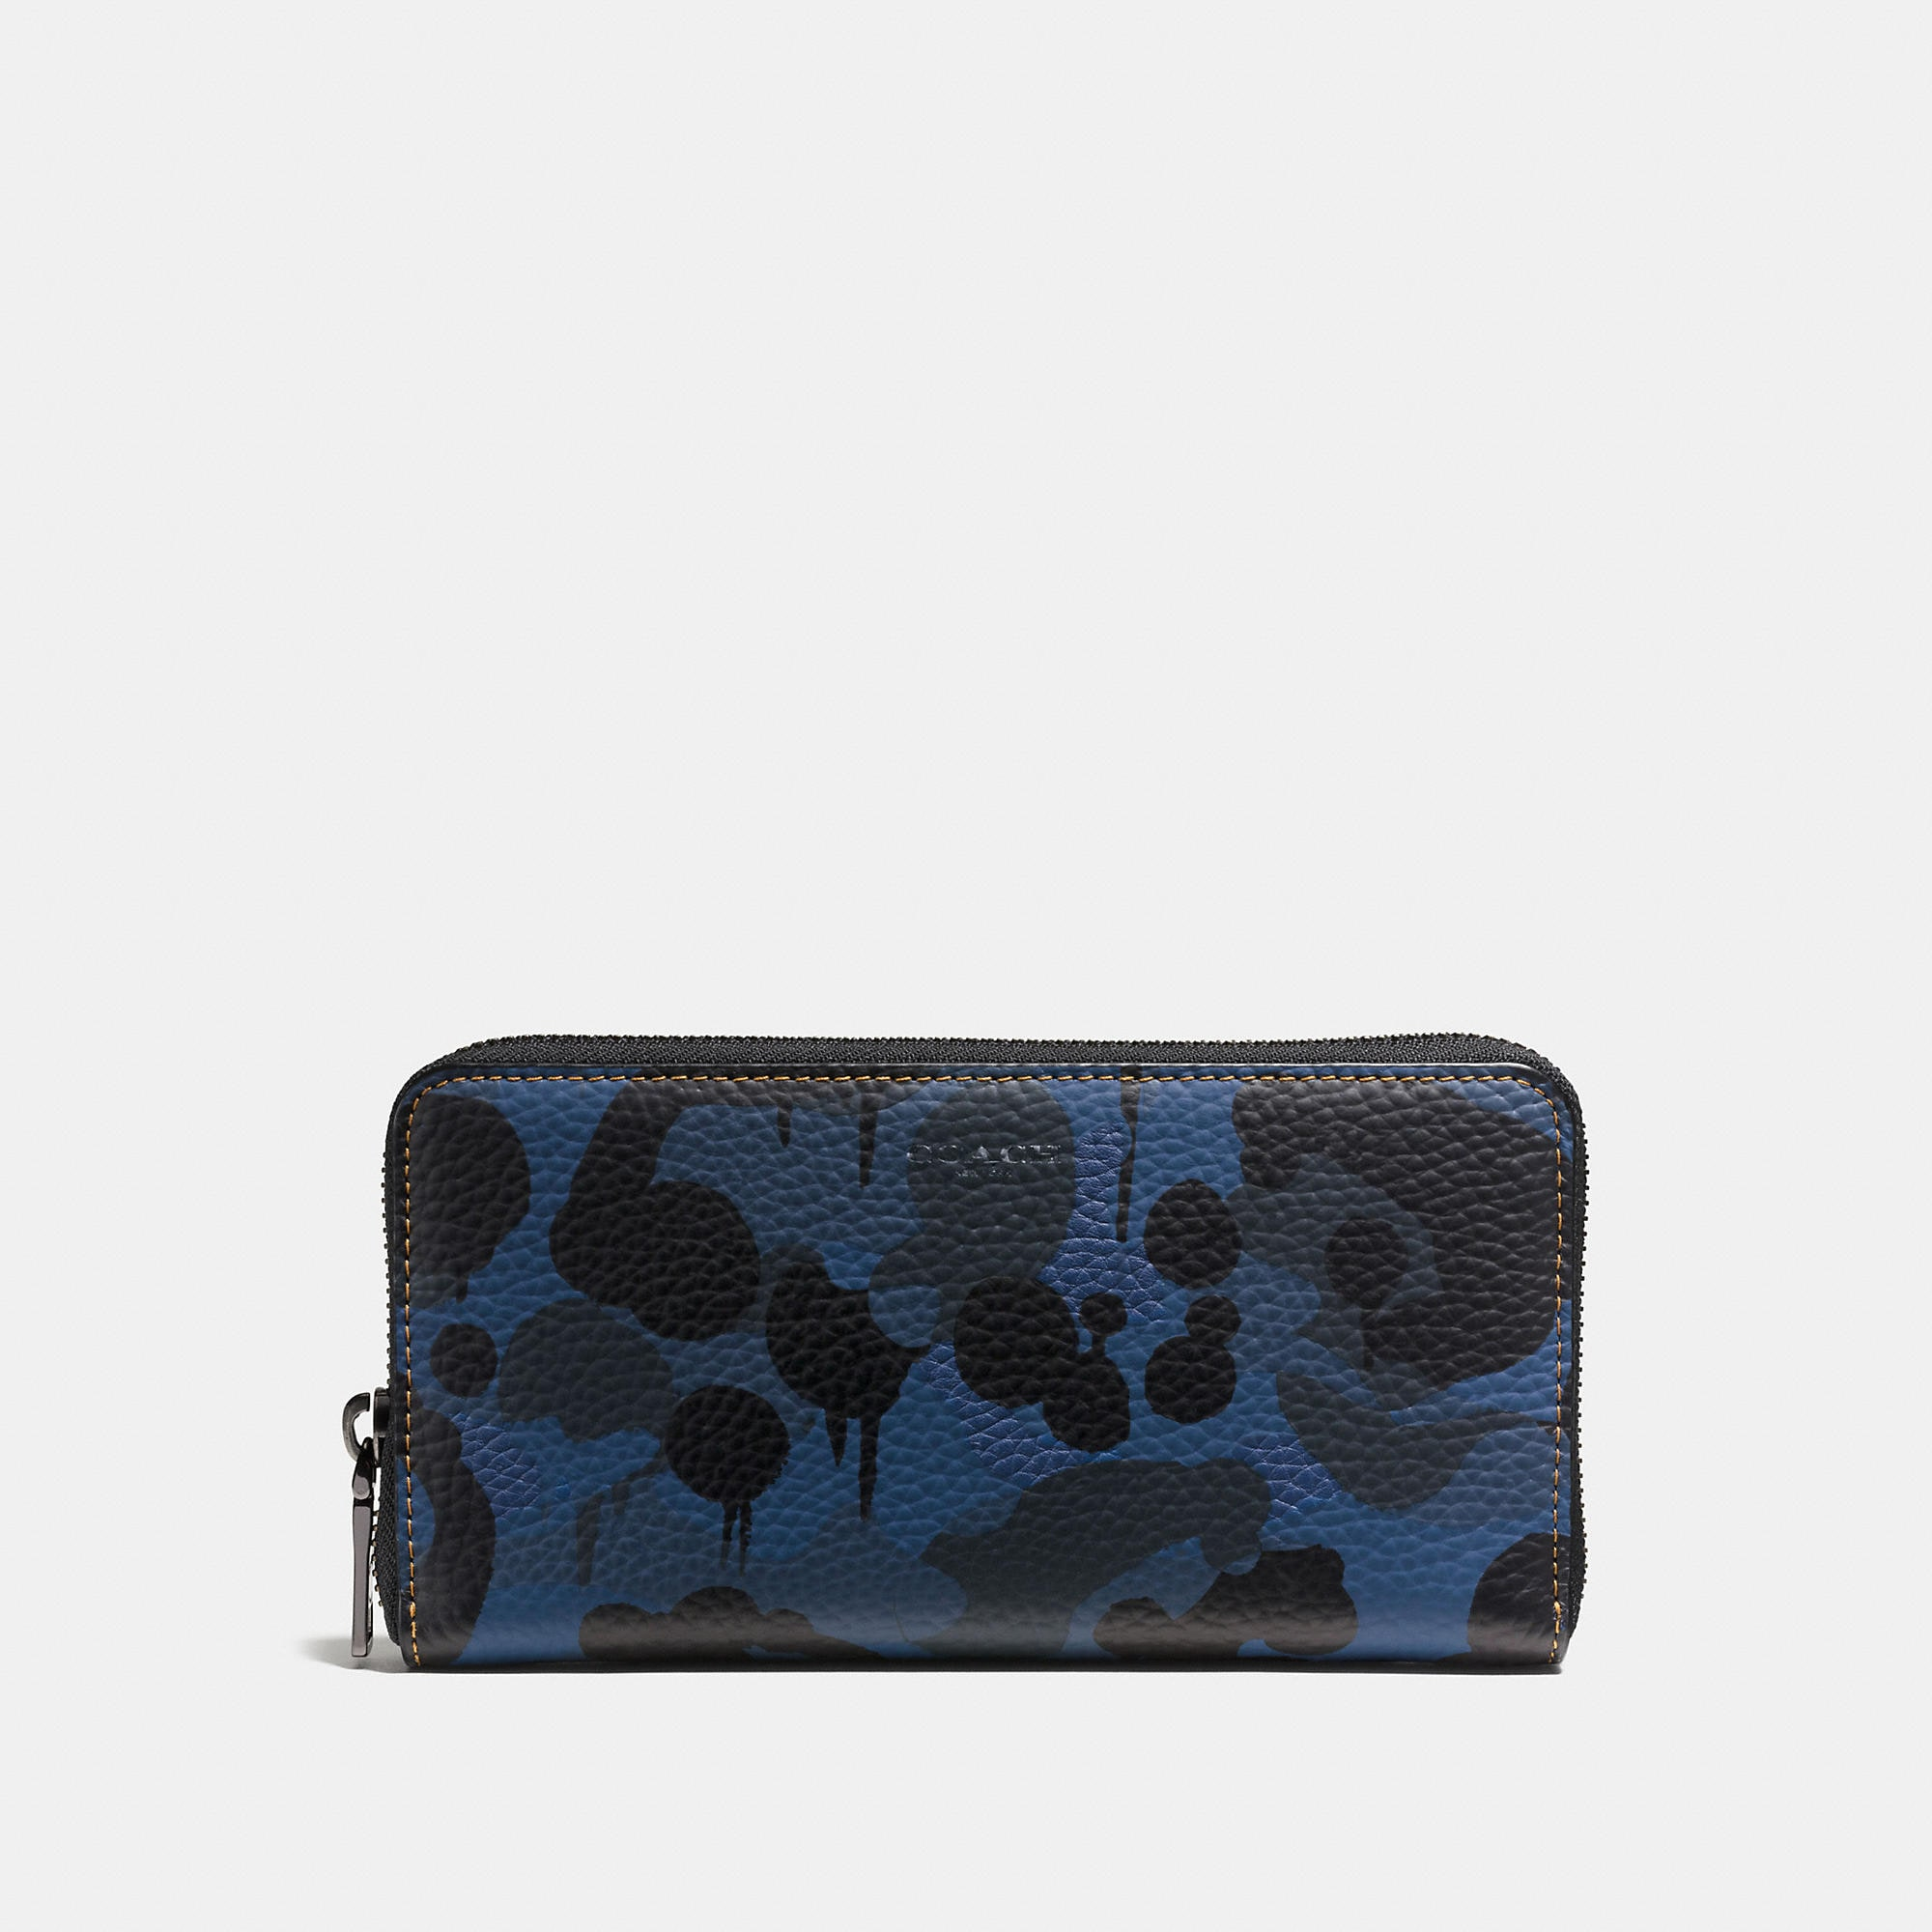 Coach Accordion Wallet In Denim Wild Beast Print Leather